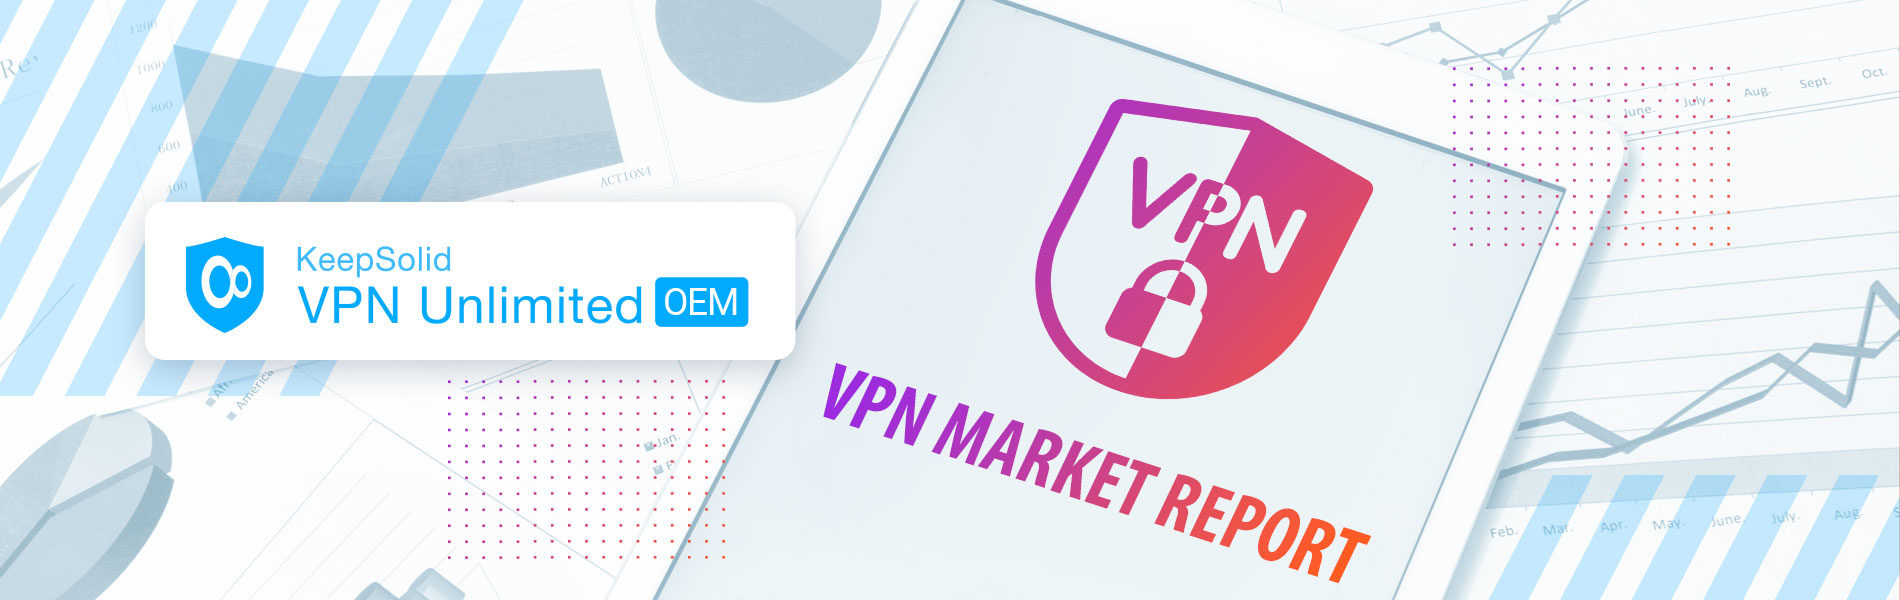 Charts of VPN market report (trends, usage, regions, players) on the table with tablet